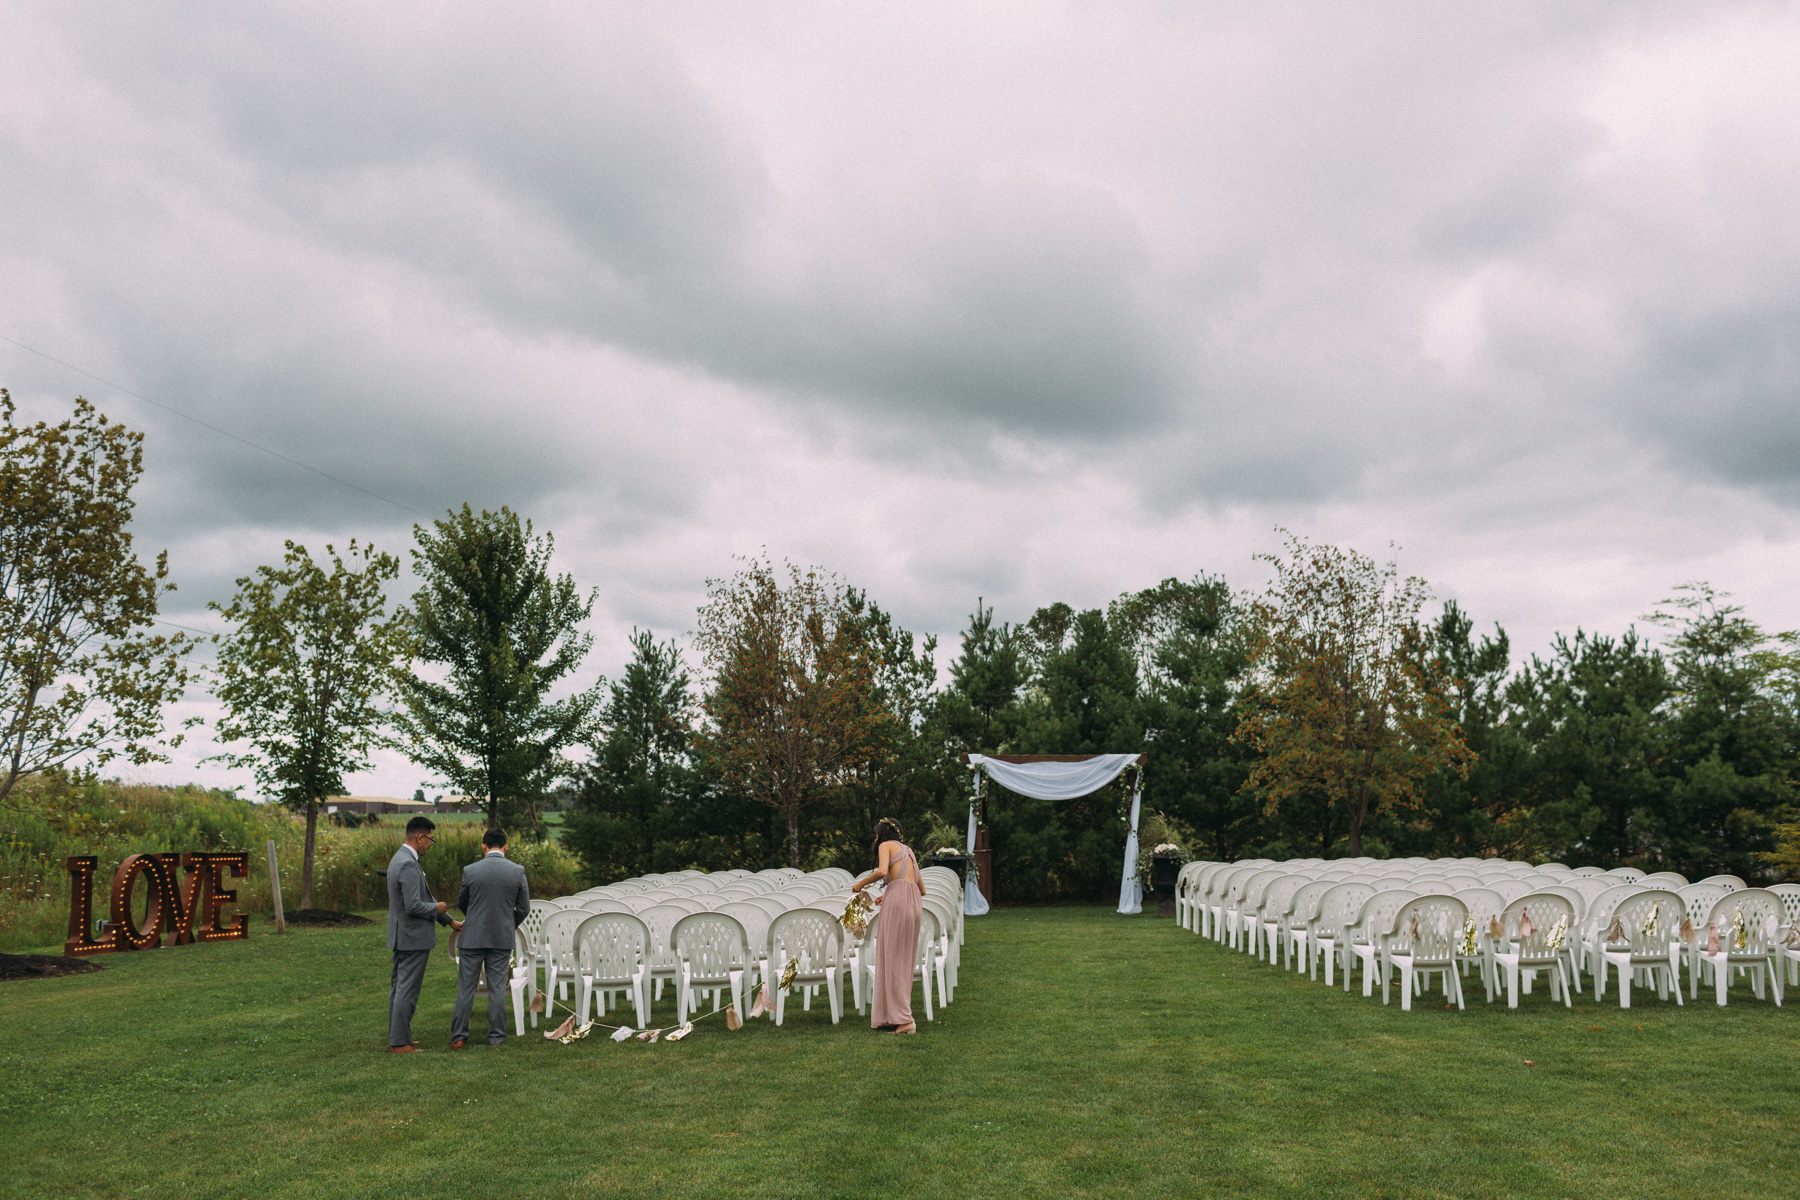 Belcroft-Estates-&-Event-Centre-wedding-photography-by-Sam-Wong-of-Artanis-Collective_025.jpg